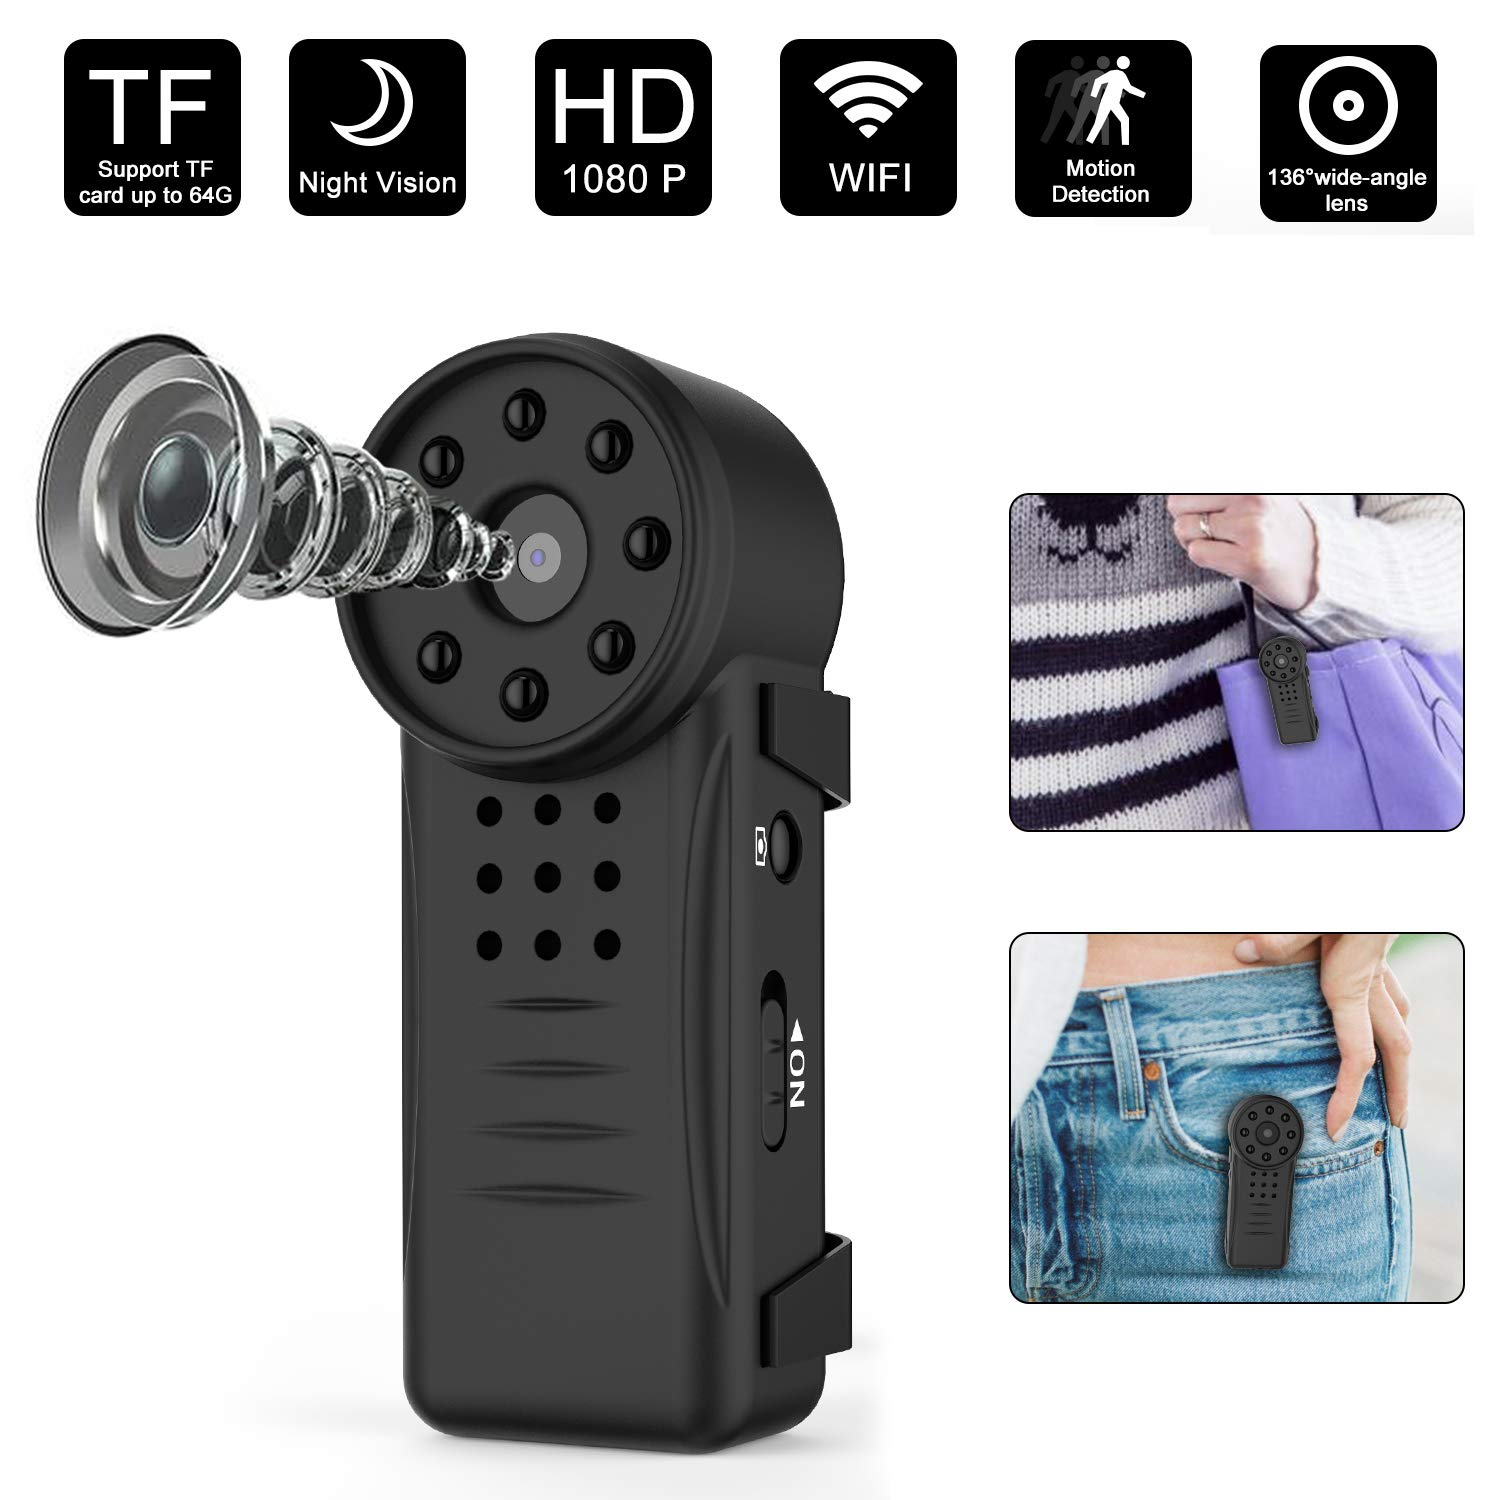 Mini Hidden Camera Spy Camera Wireless Hidden Camera True Hardware 1080P Mini Body Camera With 8 Night Vision Lights Portable Video Camera with Clip for Outdoor Indoor Nanny Cam, Phone PC Remote View